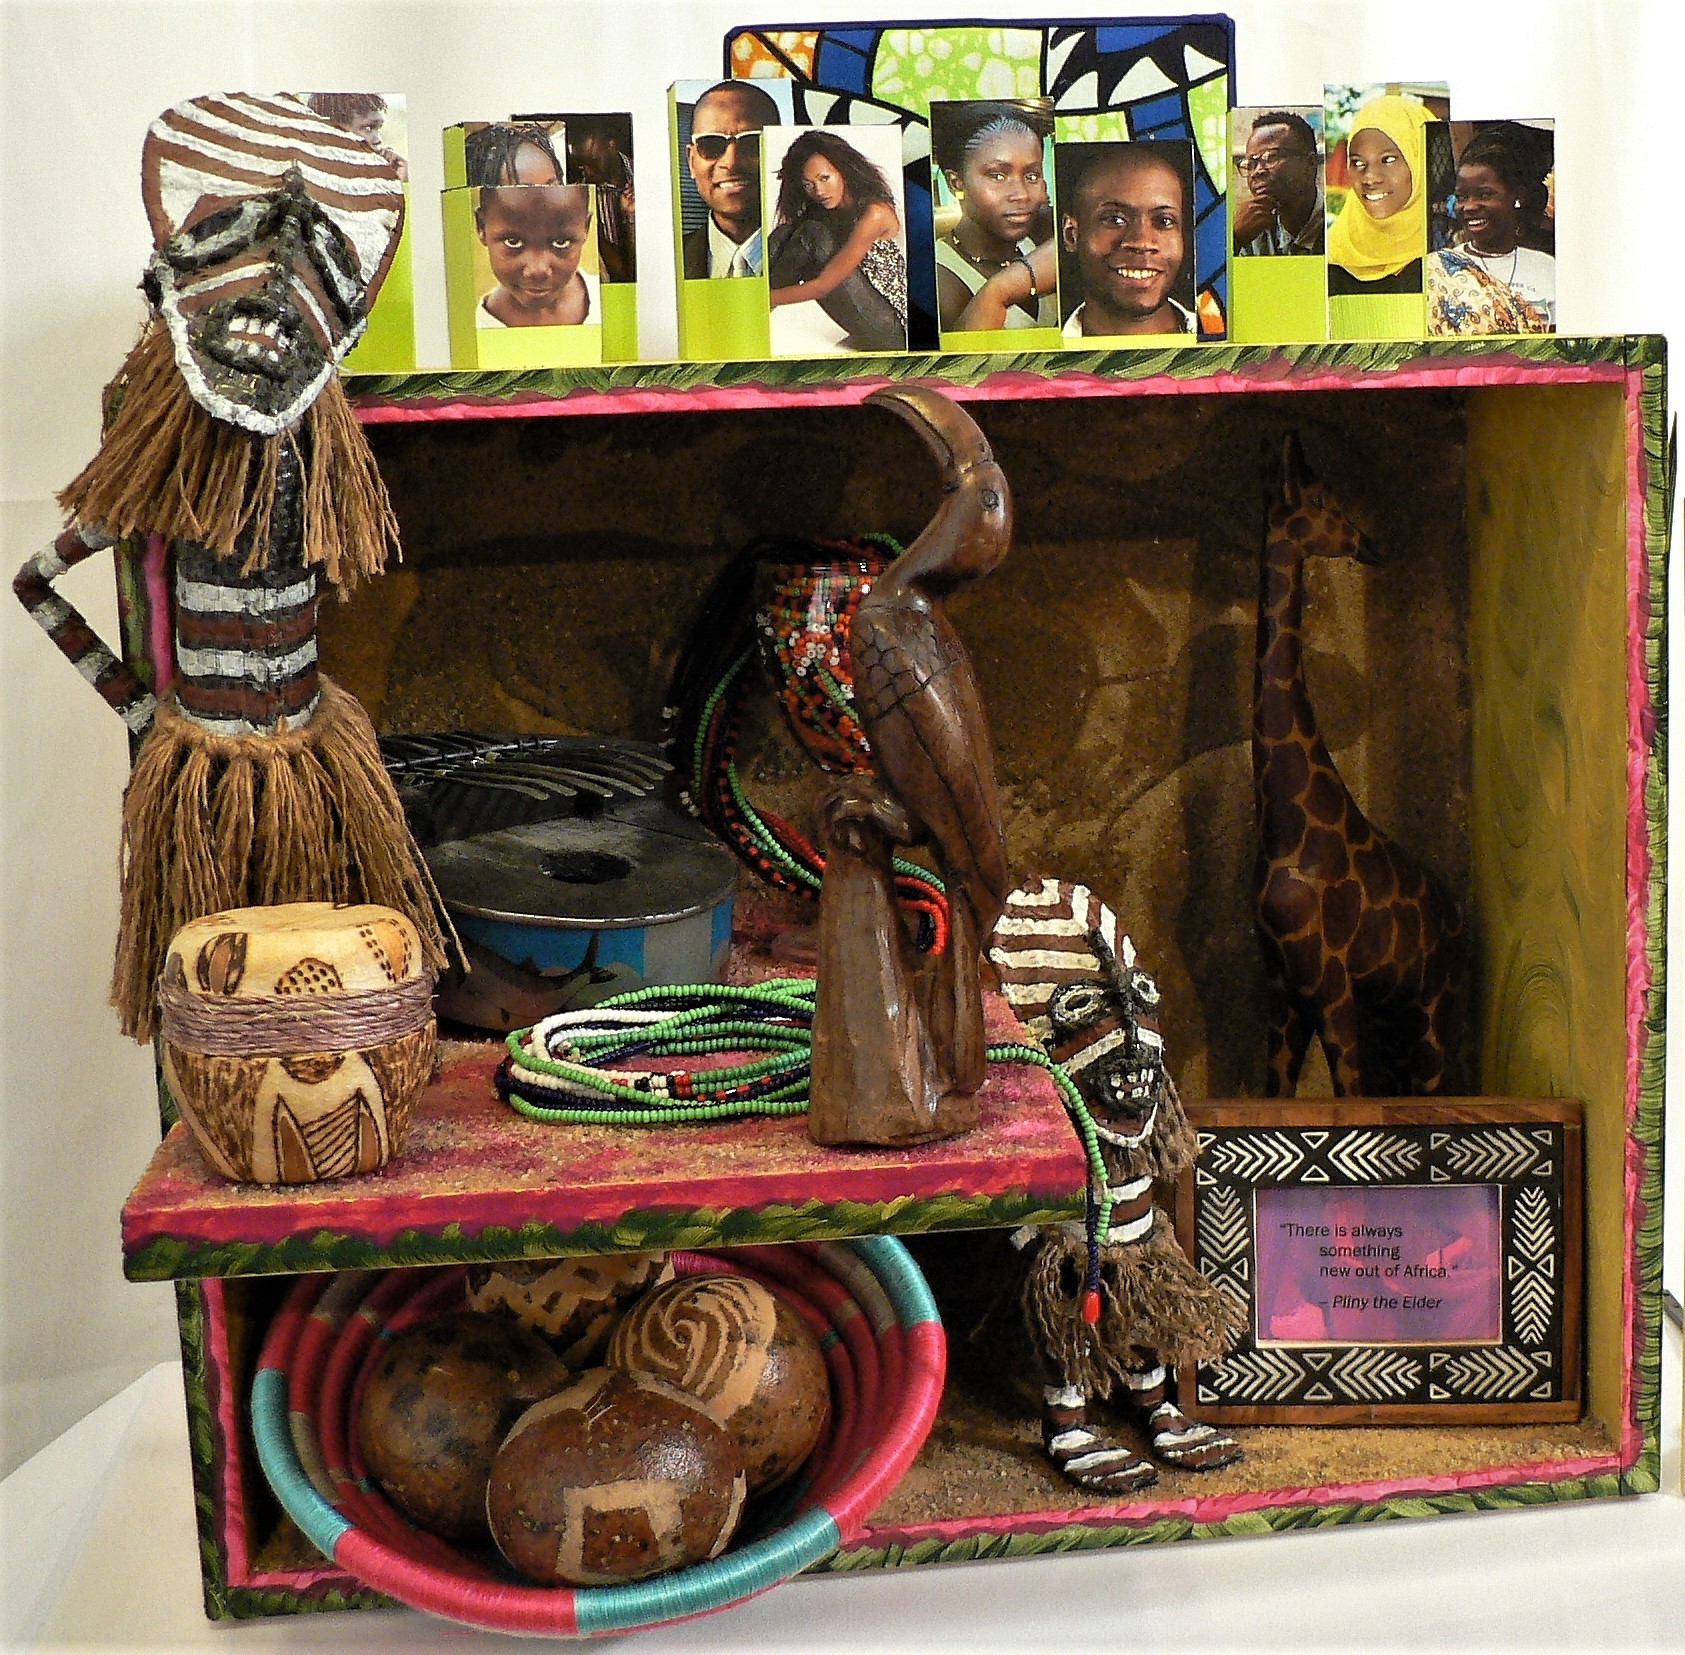 "54 Africas - ""There is always something new out of Africa."" -- Pliny the ElderMaterials: Shagaan Zambezi dolls; African hand-carved wood animals; African 'monkey apple' balls; photo frame; Freedom from Hunger photo (gift to the artist); African necklace beads; African basket; wood dresser drawer; sand; African sardine can musical instrument; drum-shaped votive candle holder; African face images from the internet; barbeque satay sticks; cloth gift box lid; glass goblet; acrylic paint; paper. Dimensions: 17""H x 17""W x 14""D. Created: September 2018.Status: For Sale ($500)"